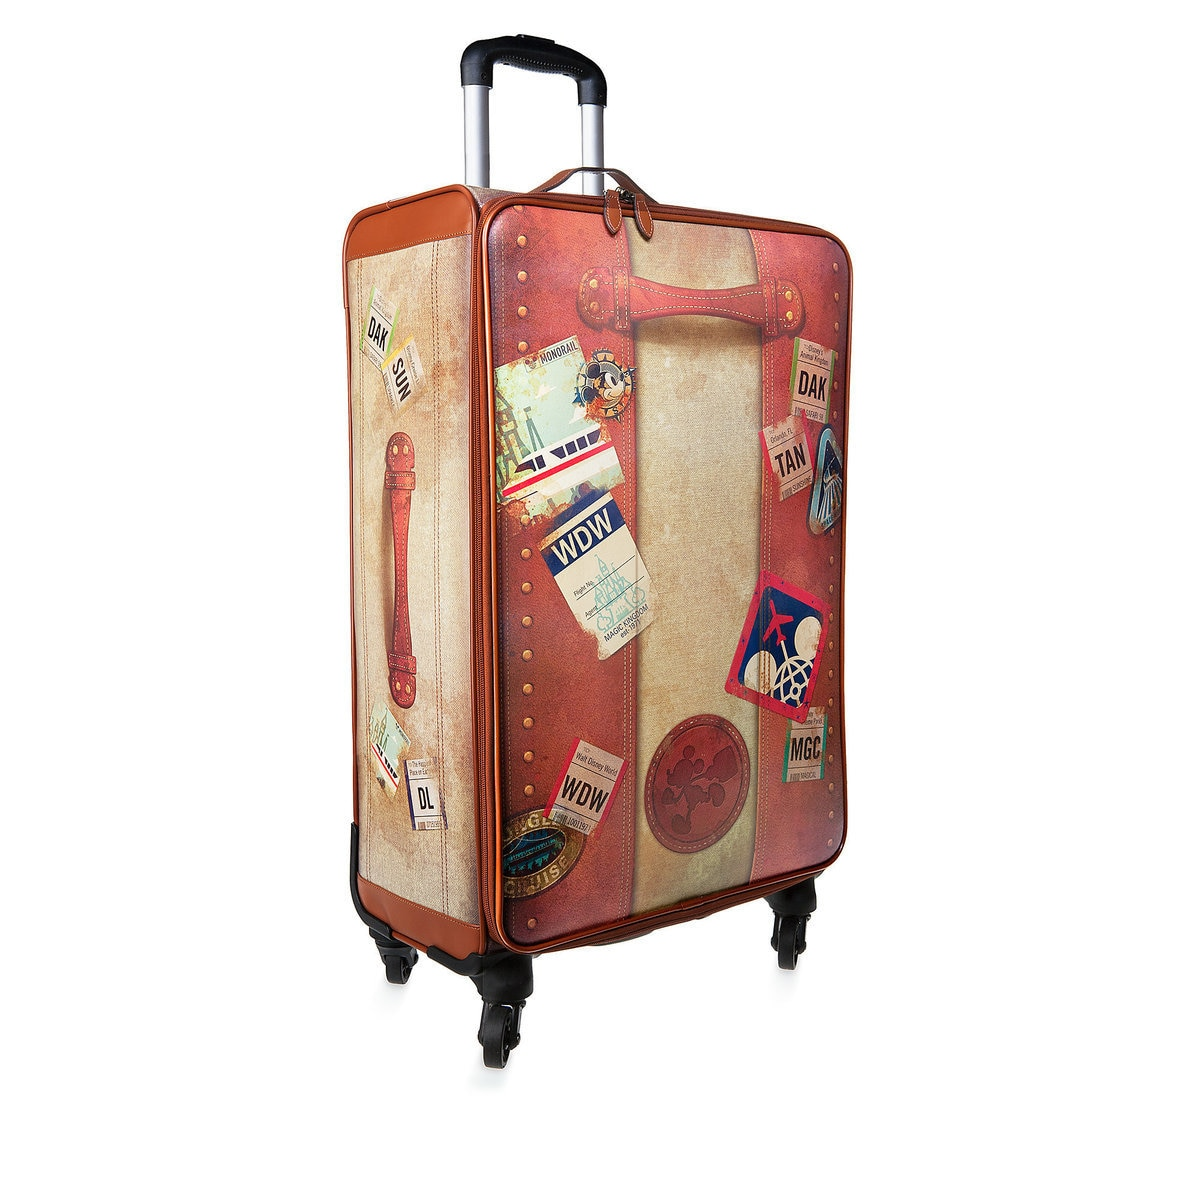 f275f7d1d41 Product Image of Disney TAG Vintage Rolling Luggage - 28     1